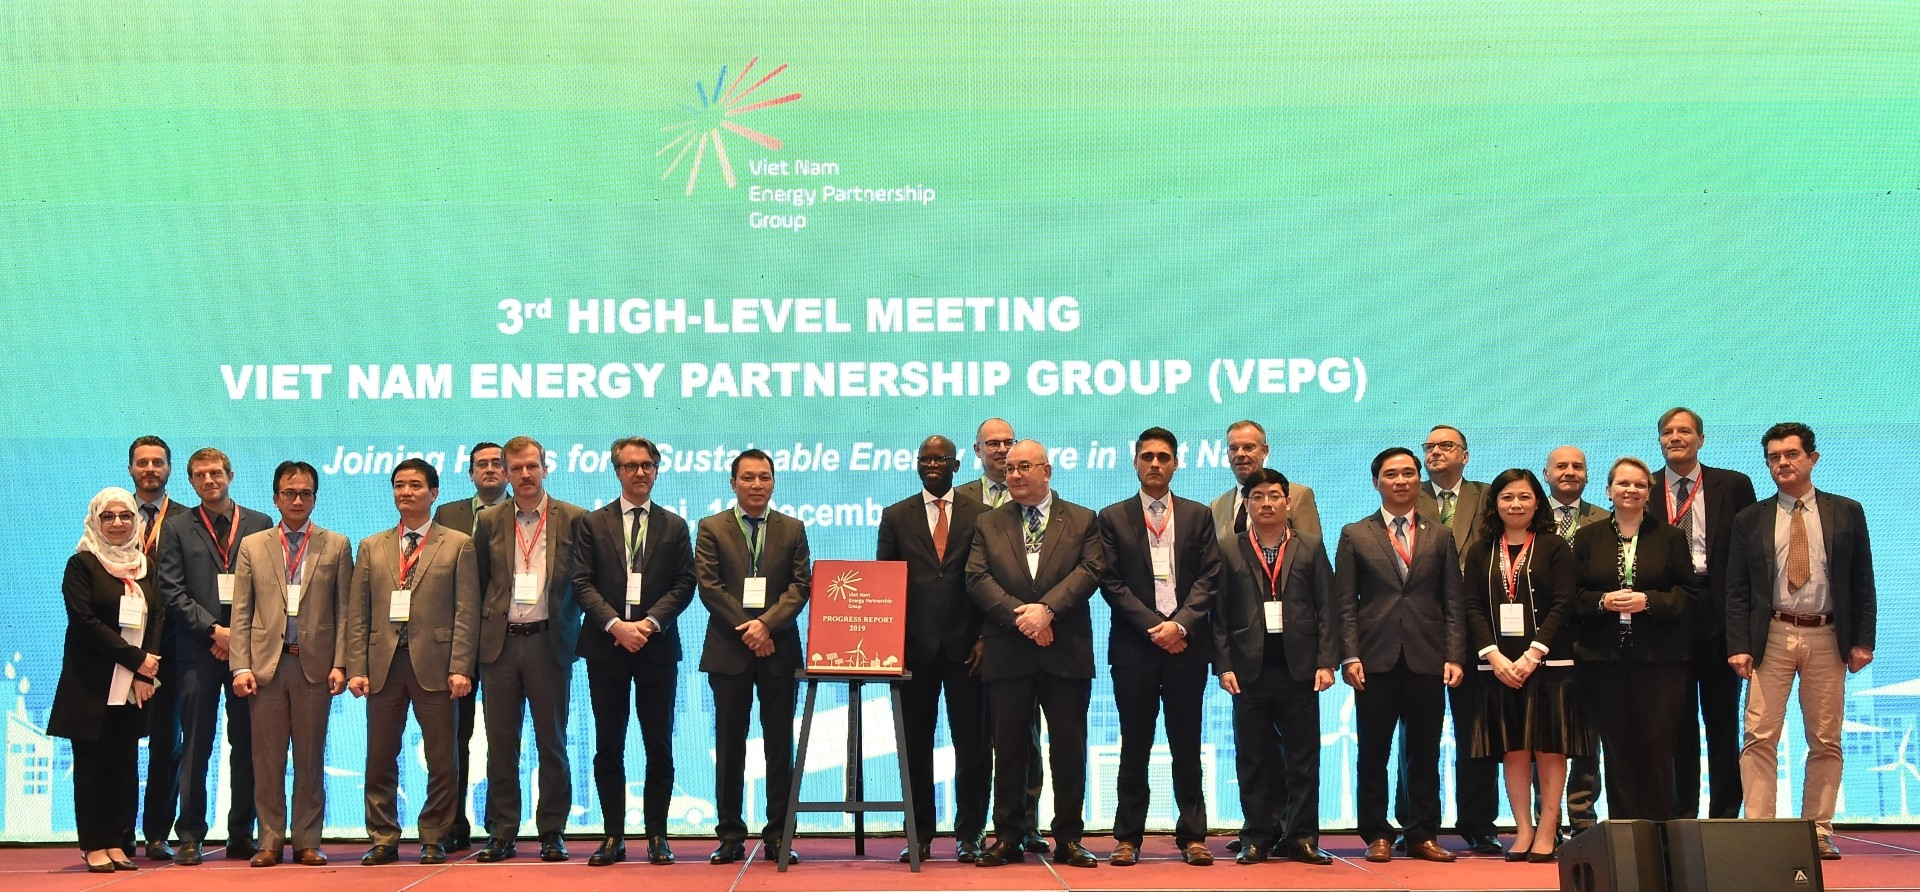 VEPG addresses key policy development processes for energy sector